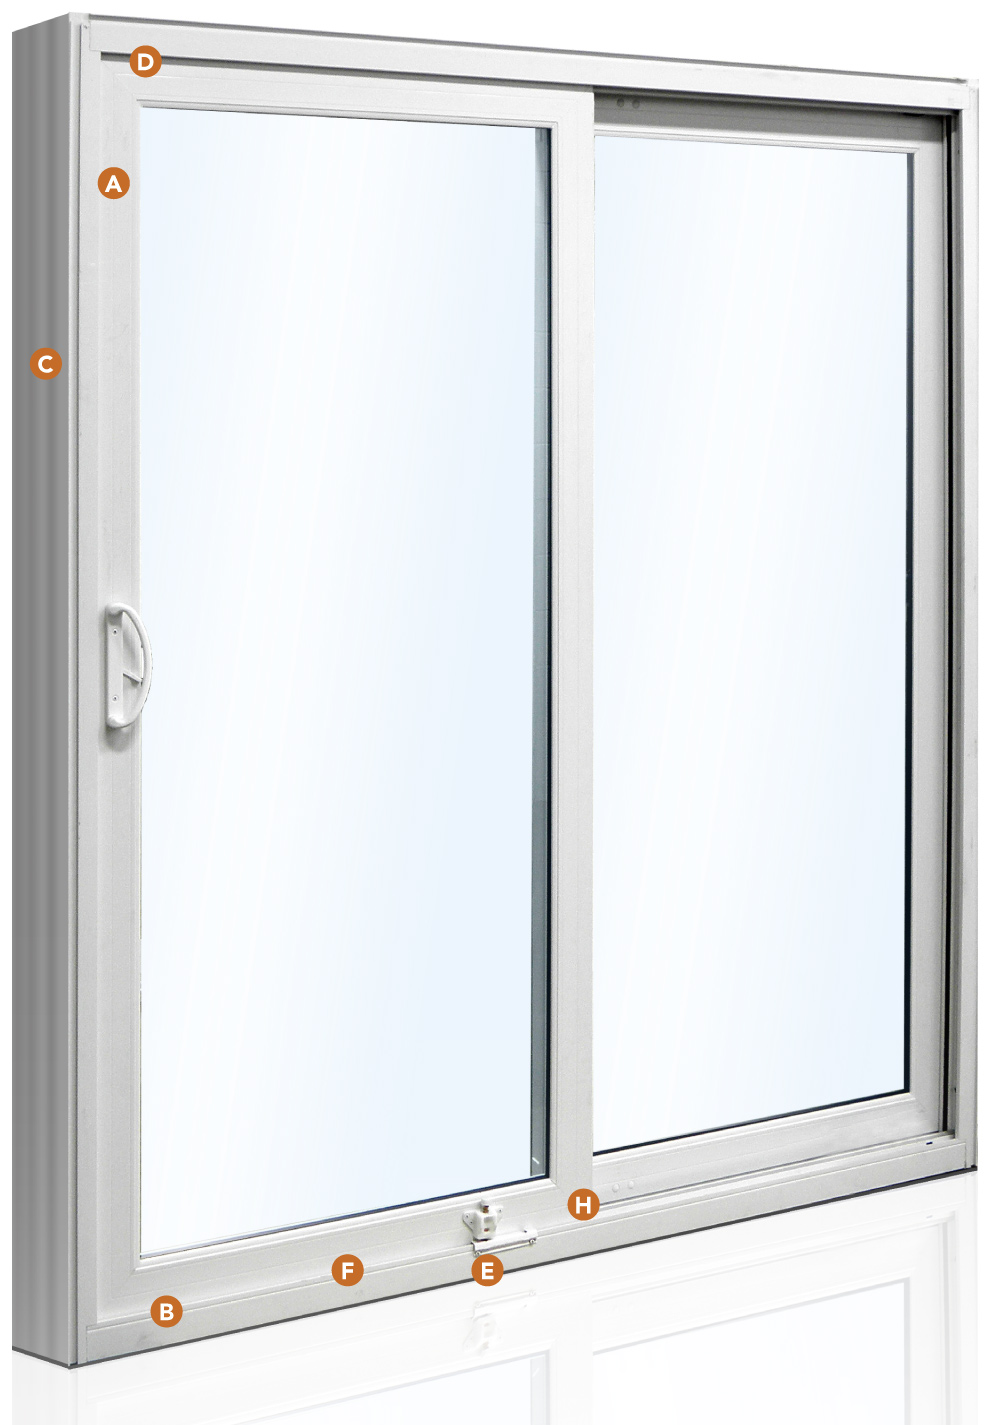 Aspect Patio door features